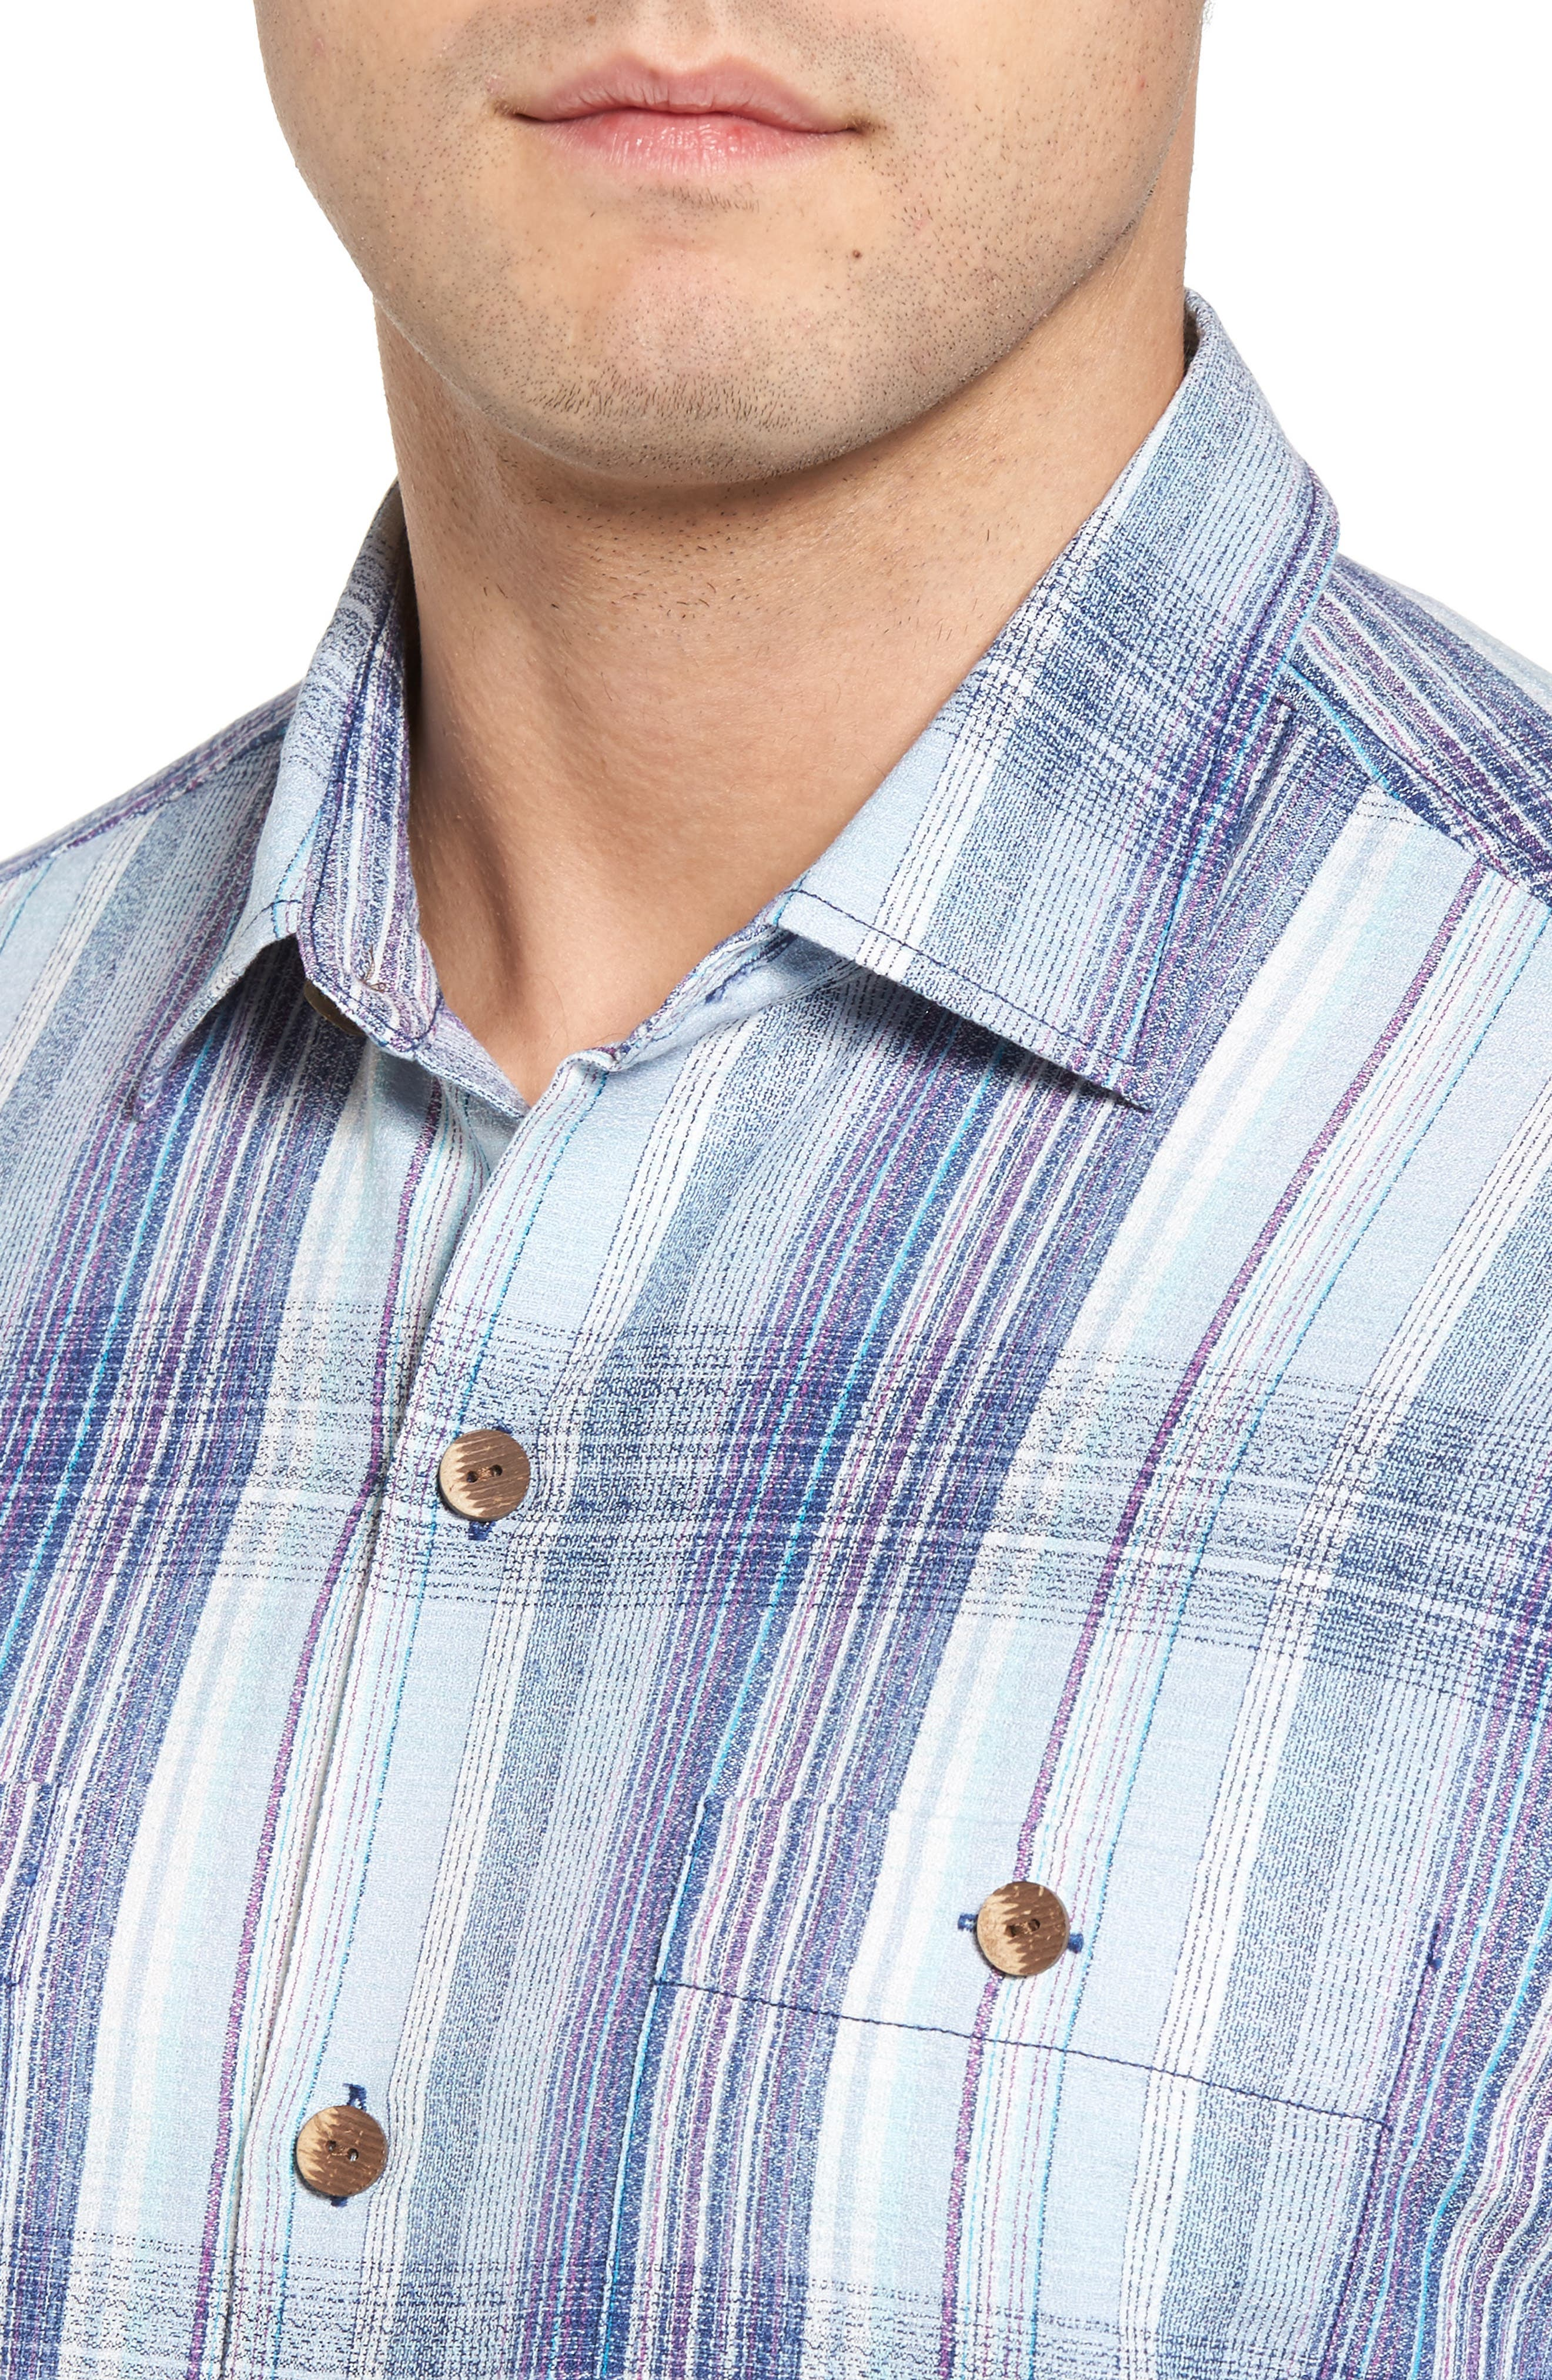 TOMMY BAHAMA,                             Banyan Cay Plaid Silk Blend Camp Shirt,                             Alternate thumbnail 4, color,                             401